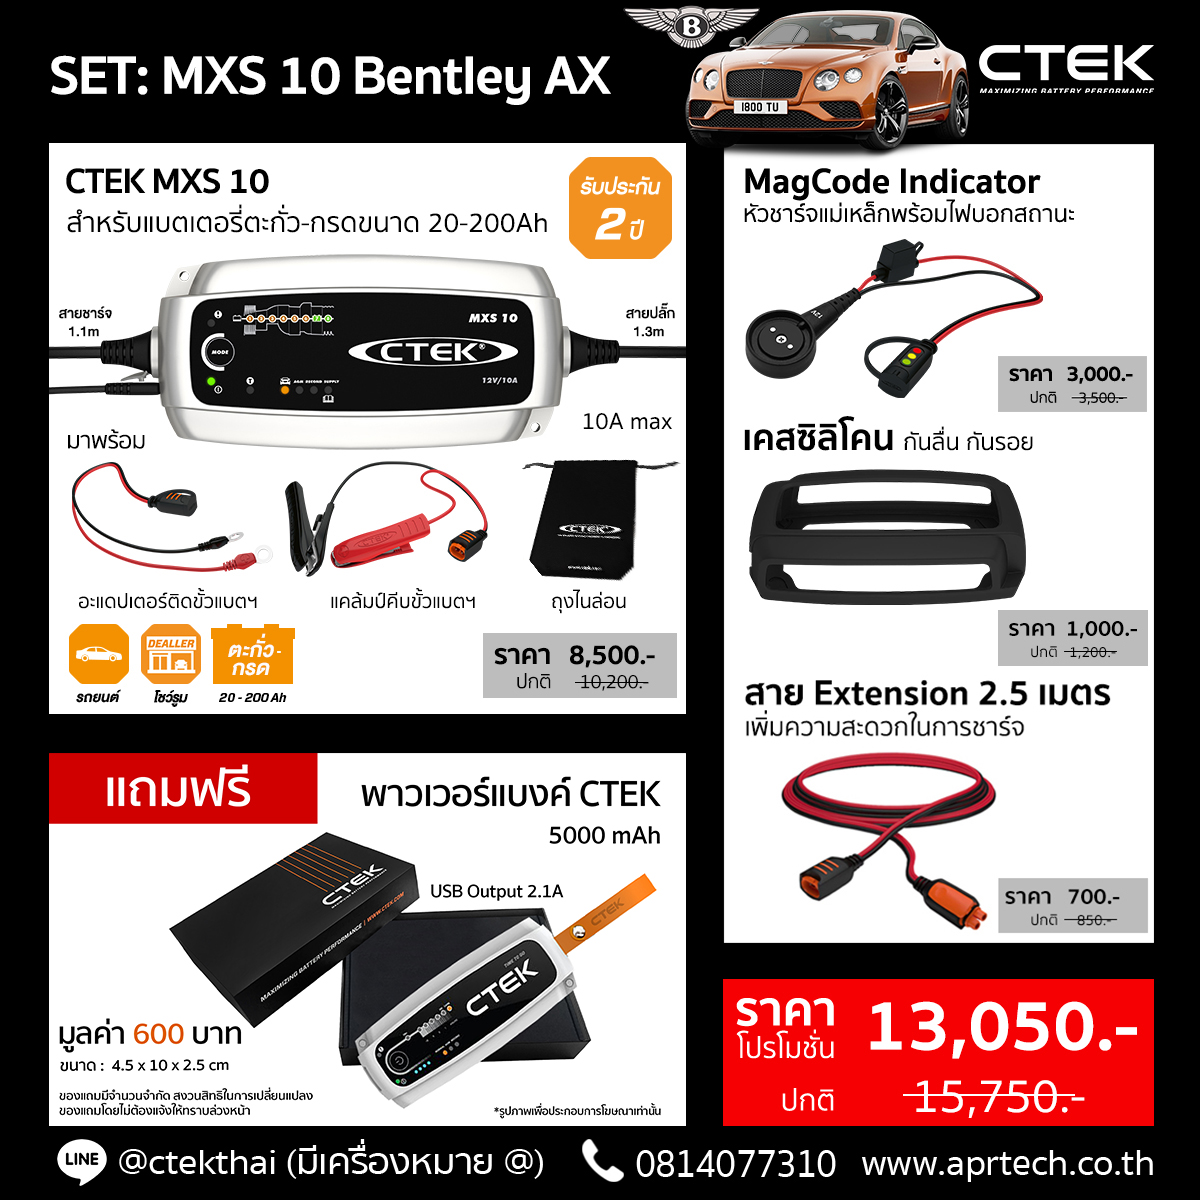 SET MXS 10 Bentley AX (CTEK MXS 10 + MagCode Indicator + Bumper + Extension 2.5)